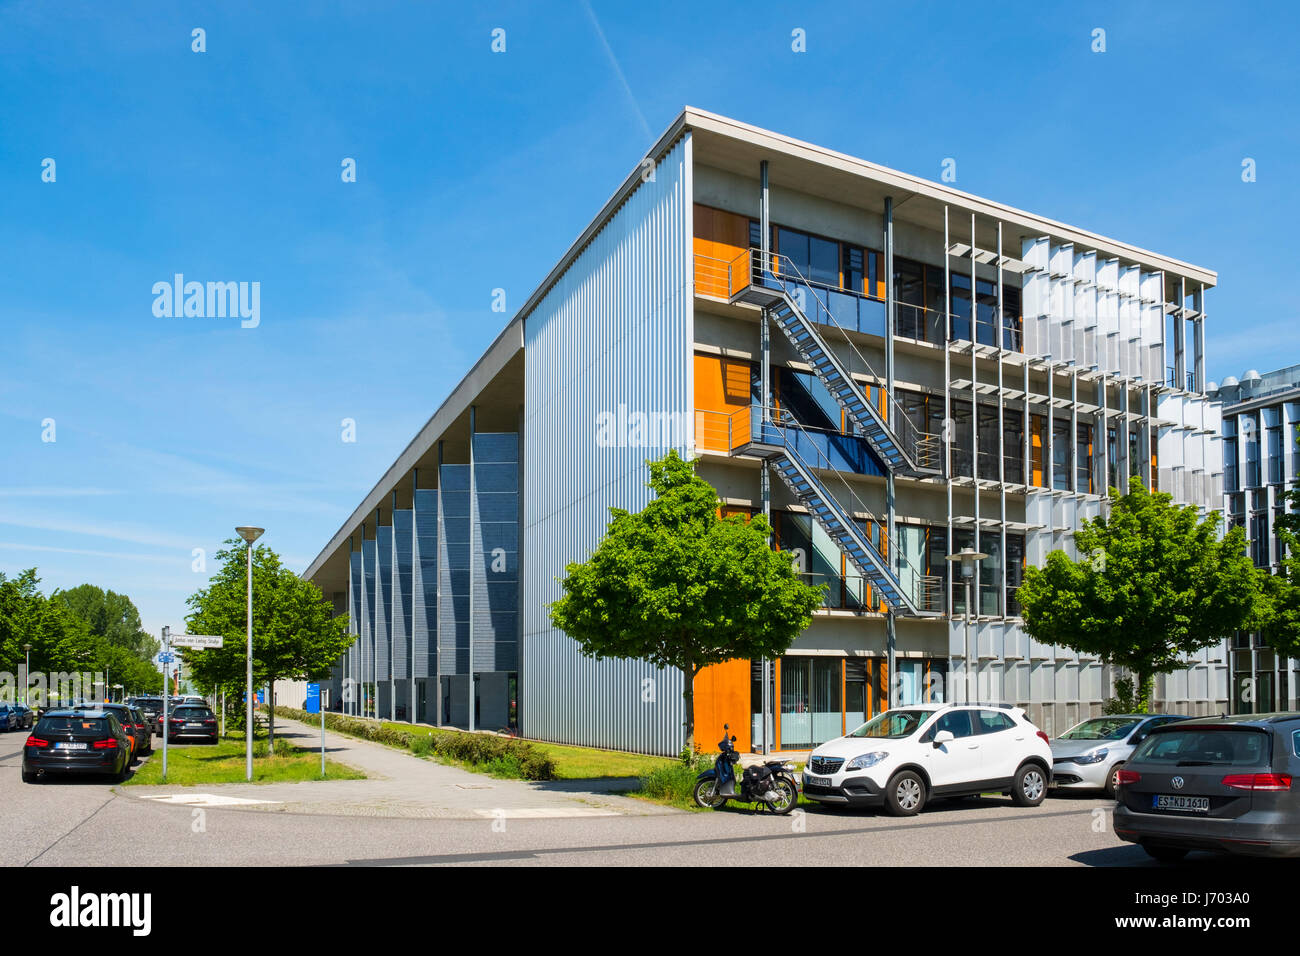 Centre of Biotechnology and the Environment  at Adlershof Science and Technology Park  Park in Berlin, Germany - Stock Image